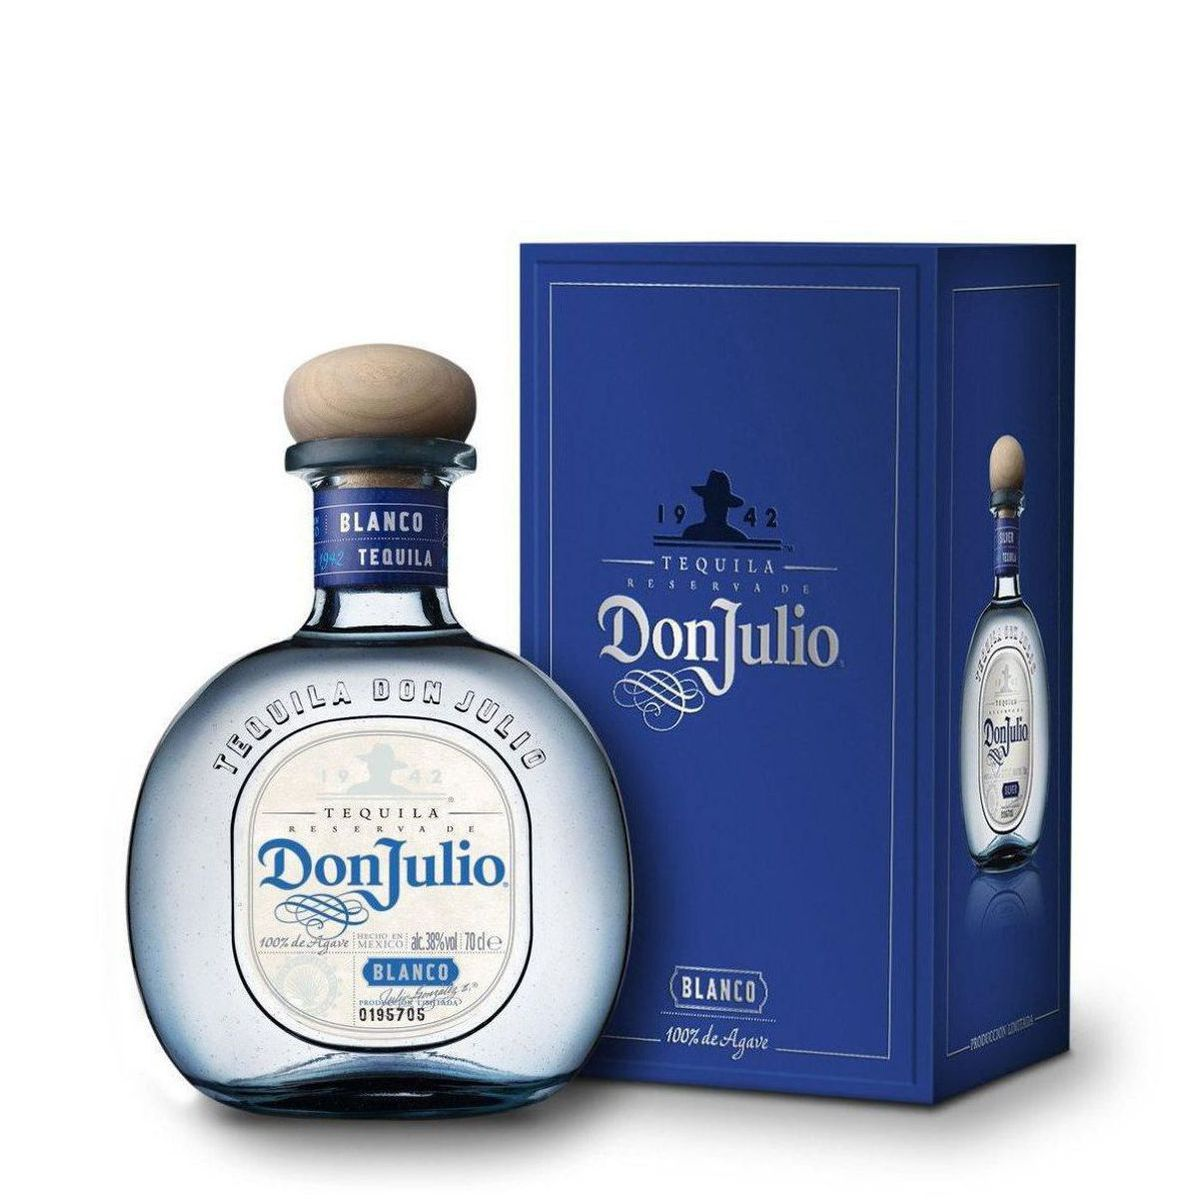 Blanco Tequila Don Julio